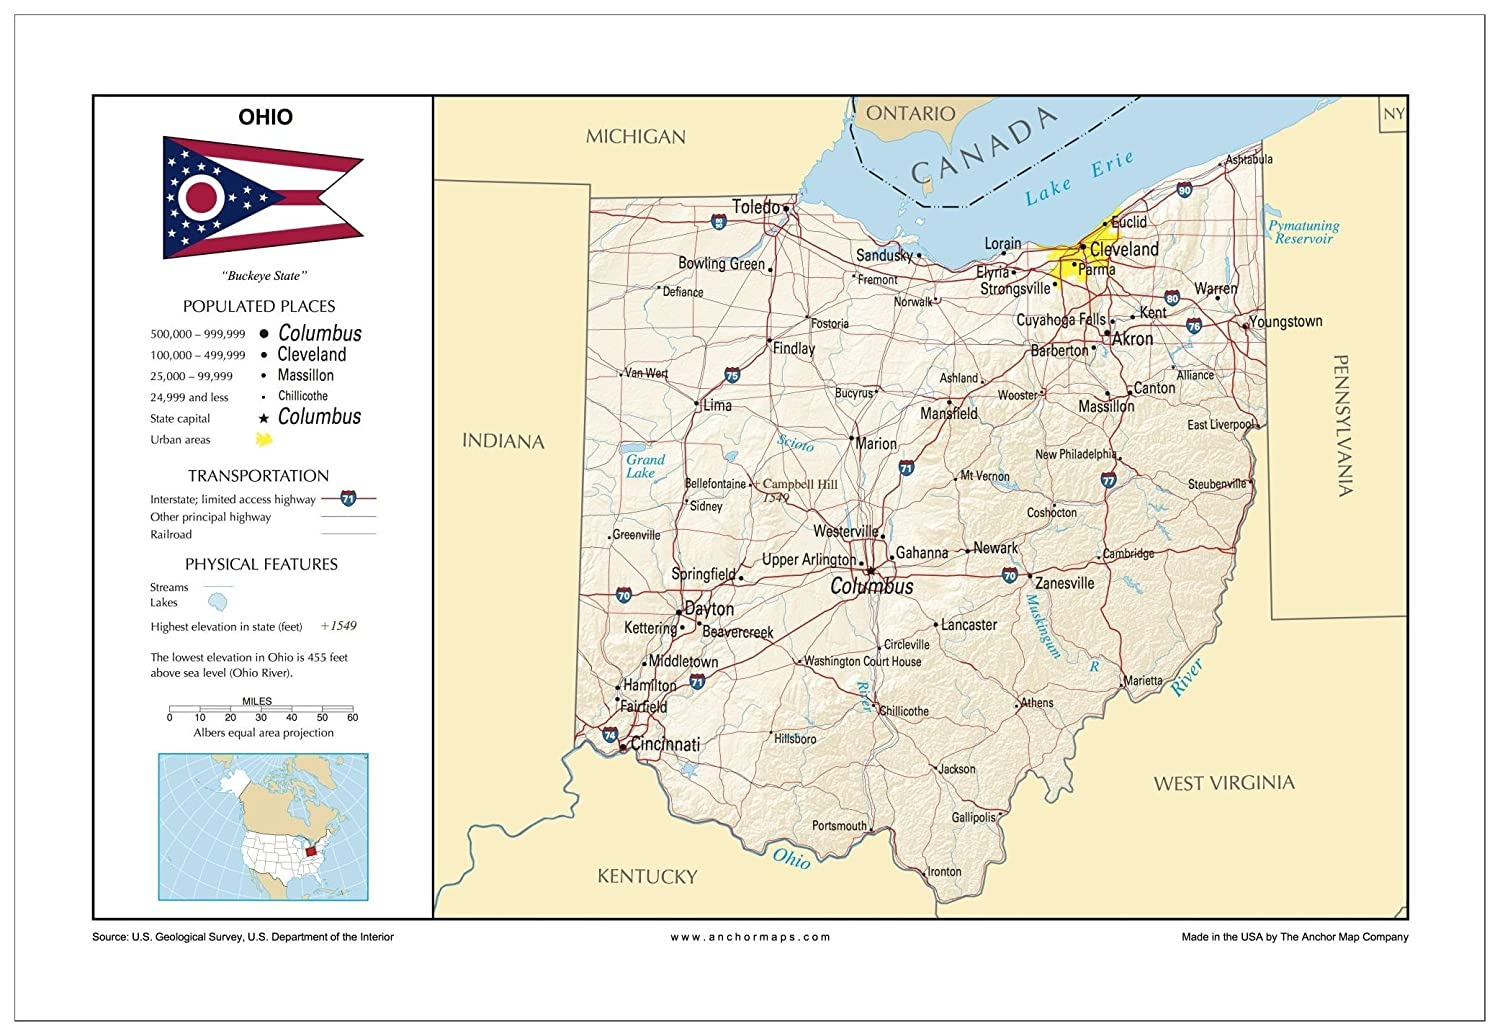 13x19 Ohio General Reference Wall Map - Anchor Maps USA Foundational on boise ohio map, pleasant ridge ohio map, sandusky minnesota map, alliance ohio map, east canton ohio map, ohio county map, destination point map, stark ohio map, parma hts ohio map, wapakoneta ohio map, southeastern ohio map, pike ohio map, lawrence ohio map, flint ohio map, ohio ohio map, white cottage ohio map, ohio on us map, south bass island ohio map, northfield ohio map, st bernard ohio map,